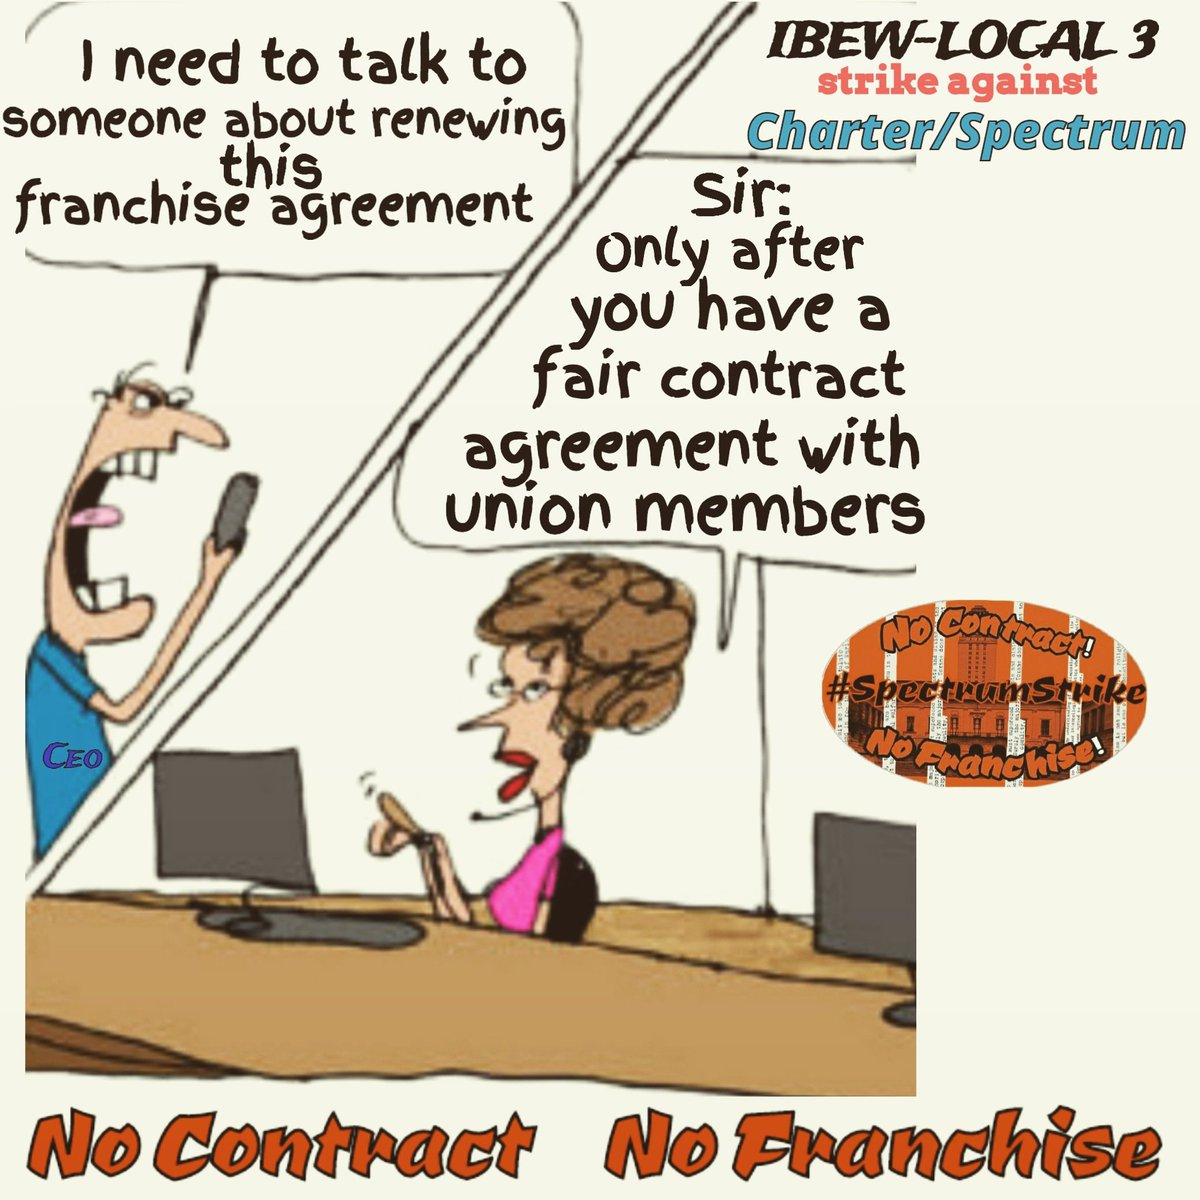 Day1193 Brothas & Sisthas ideally that's how it should go. But due to backdoor dealings; that's not quite how it's going. They're excuse now: CoronaVirus Negotiations.! What negotiations? #SpectrumStrike #Local3 #FairContractNow #corporategreed #NoContractNoFranchise2020<br>http://pic.twitter.com/HvQBEYpAZb